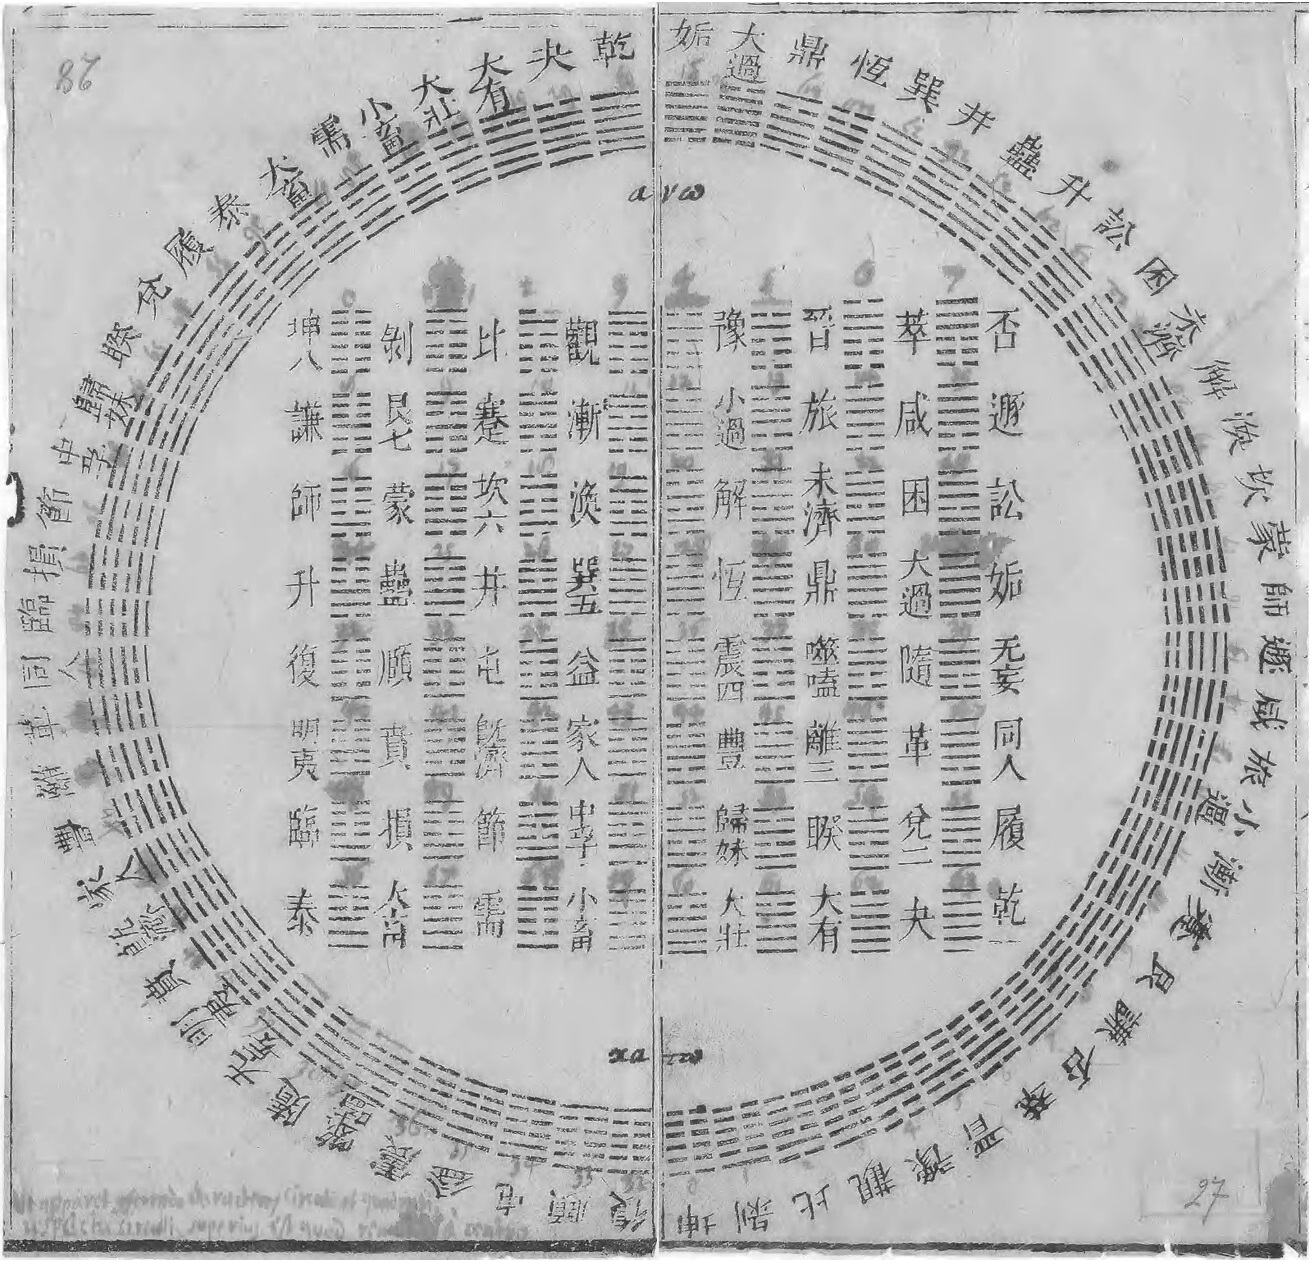 Diagram_of_I_Ching_hexagrams_owned_by_Gottfried_Wilhelm_Leibniz,_1701